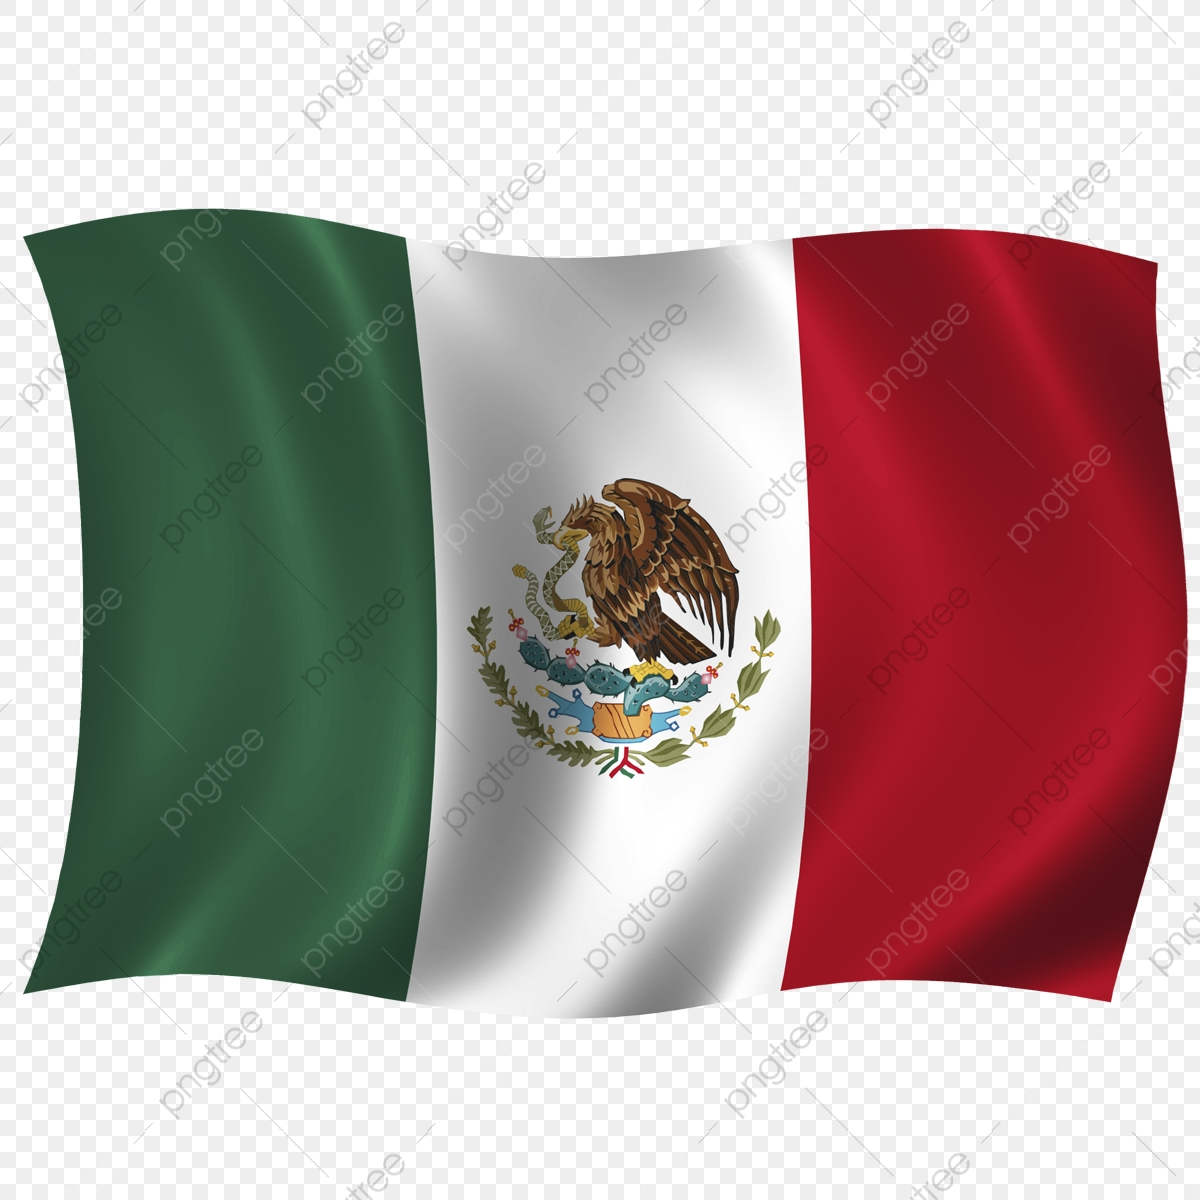 Library of bandeira mexico svg png files ▻▻▻ Clipart Art 2019.